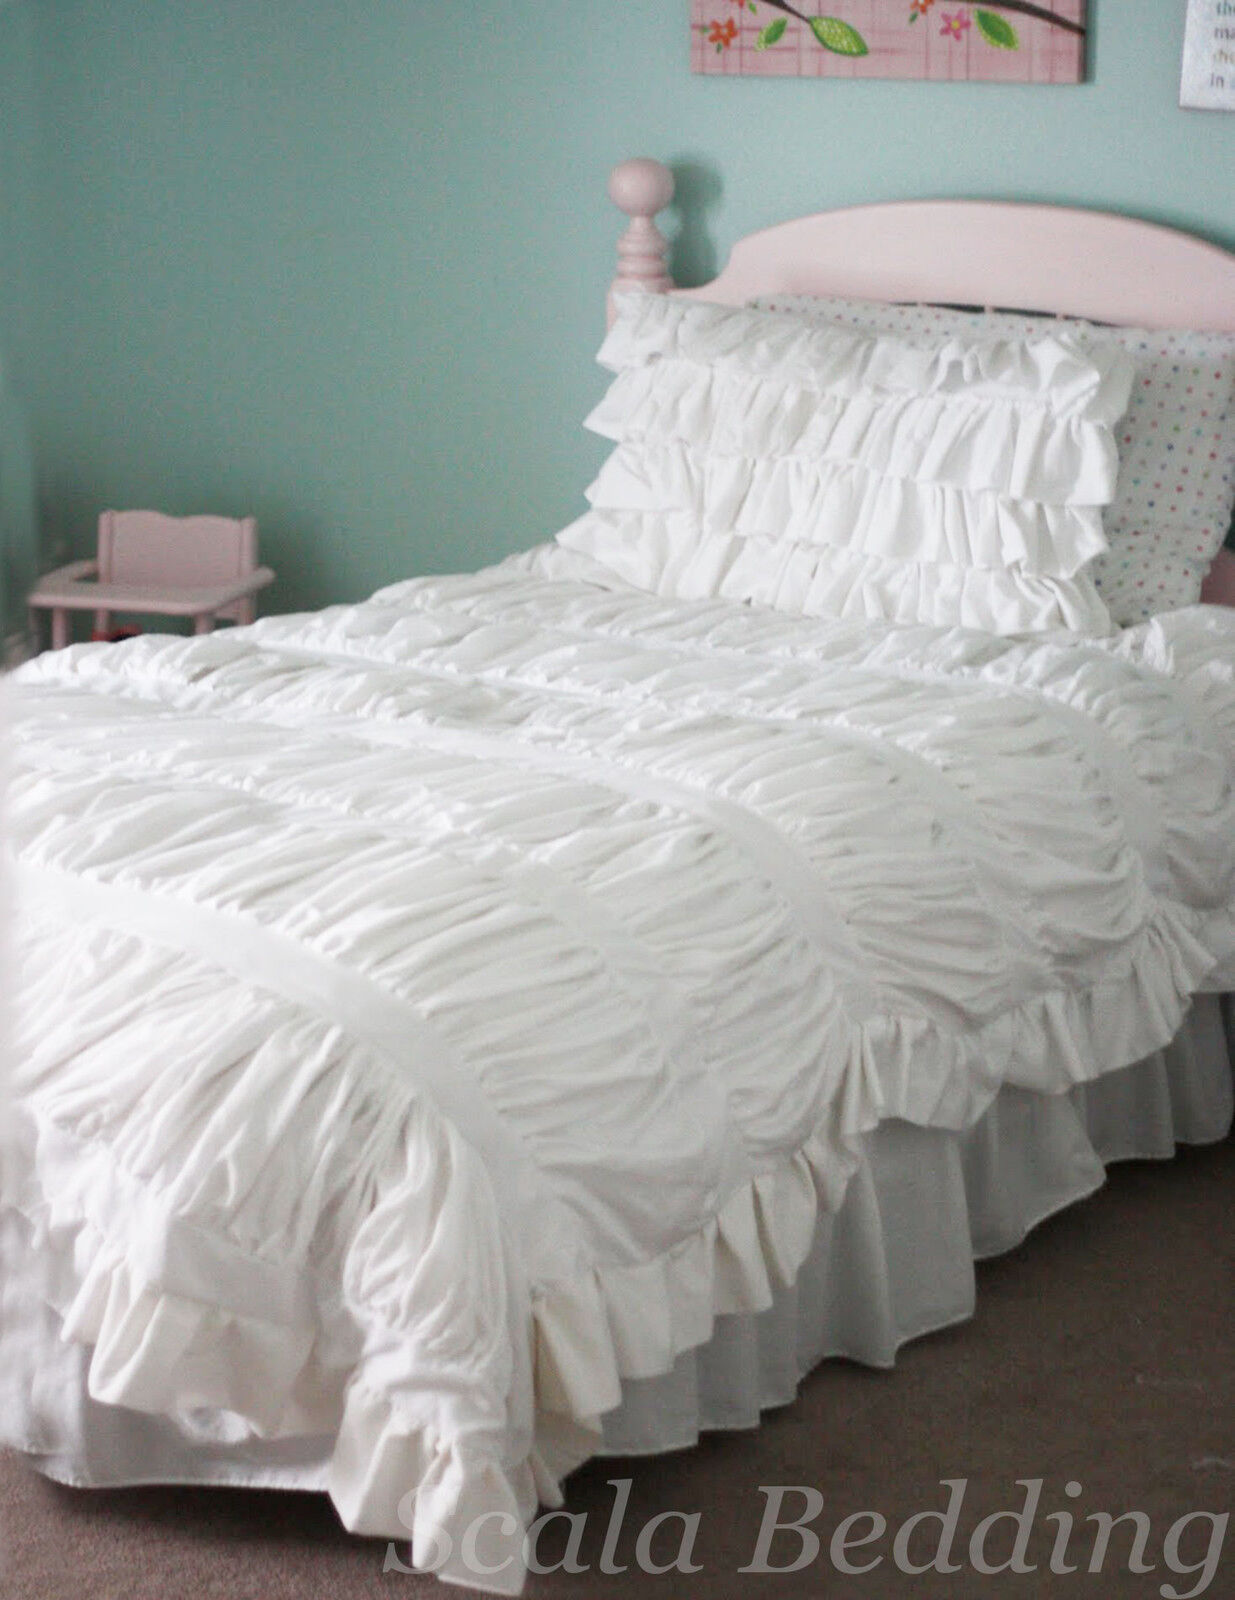 3 Piece Step Gathered Ruffle Duvet Set 100% Egyptian Cotton All size & color